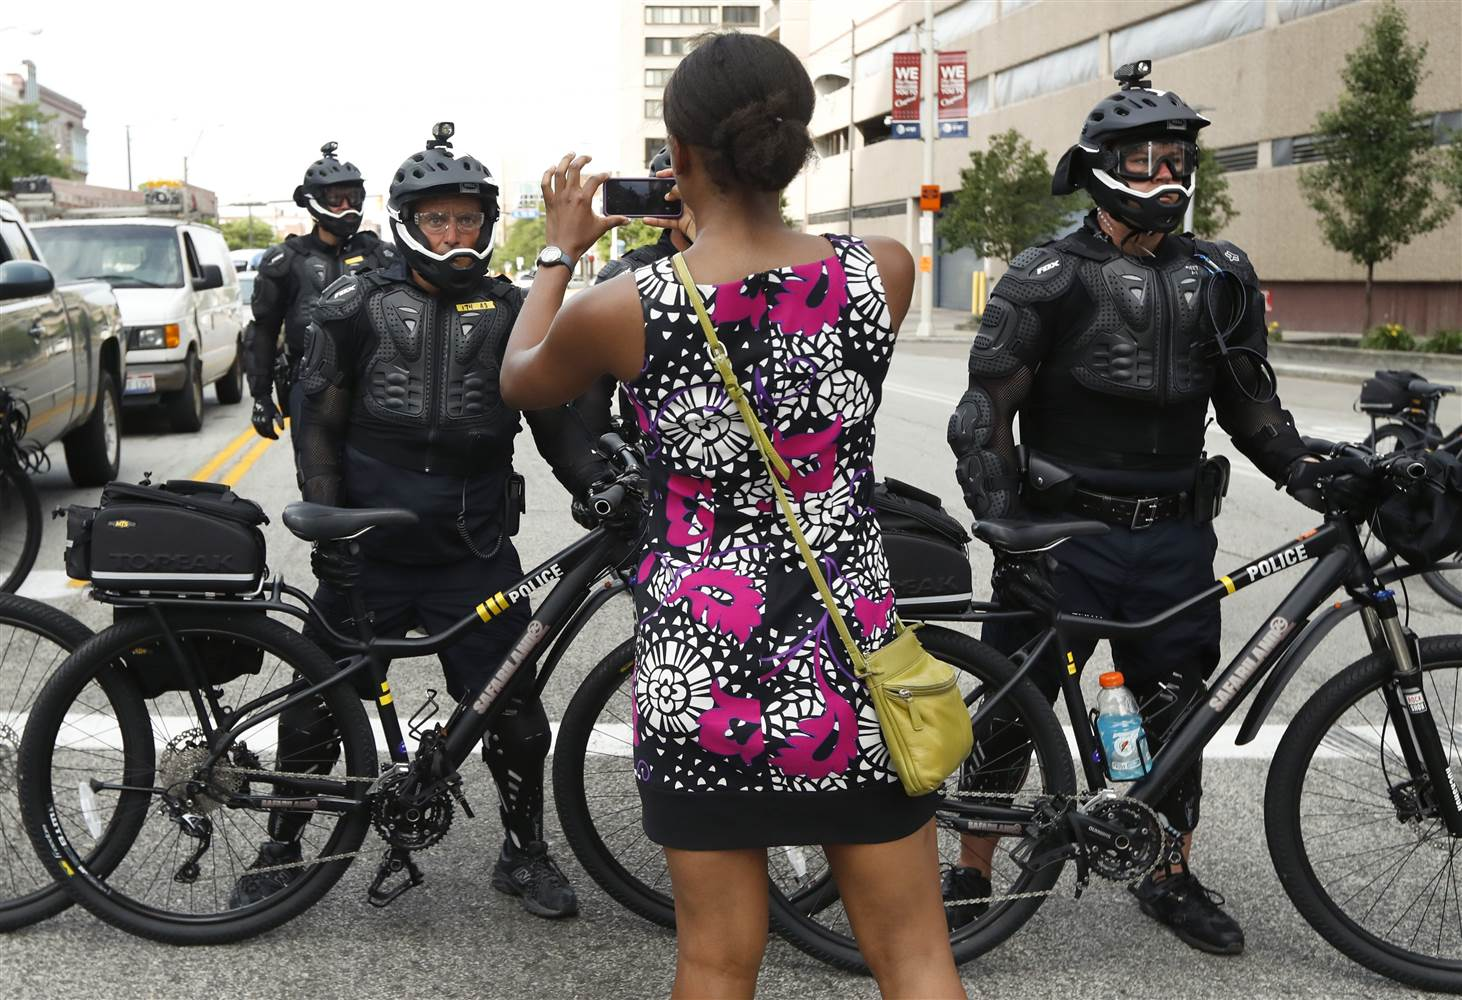 Cleveland Police Are Using Bikes To Prevent Violence At The RNC